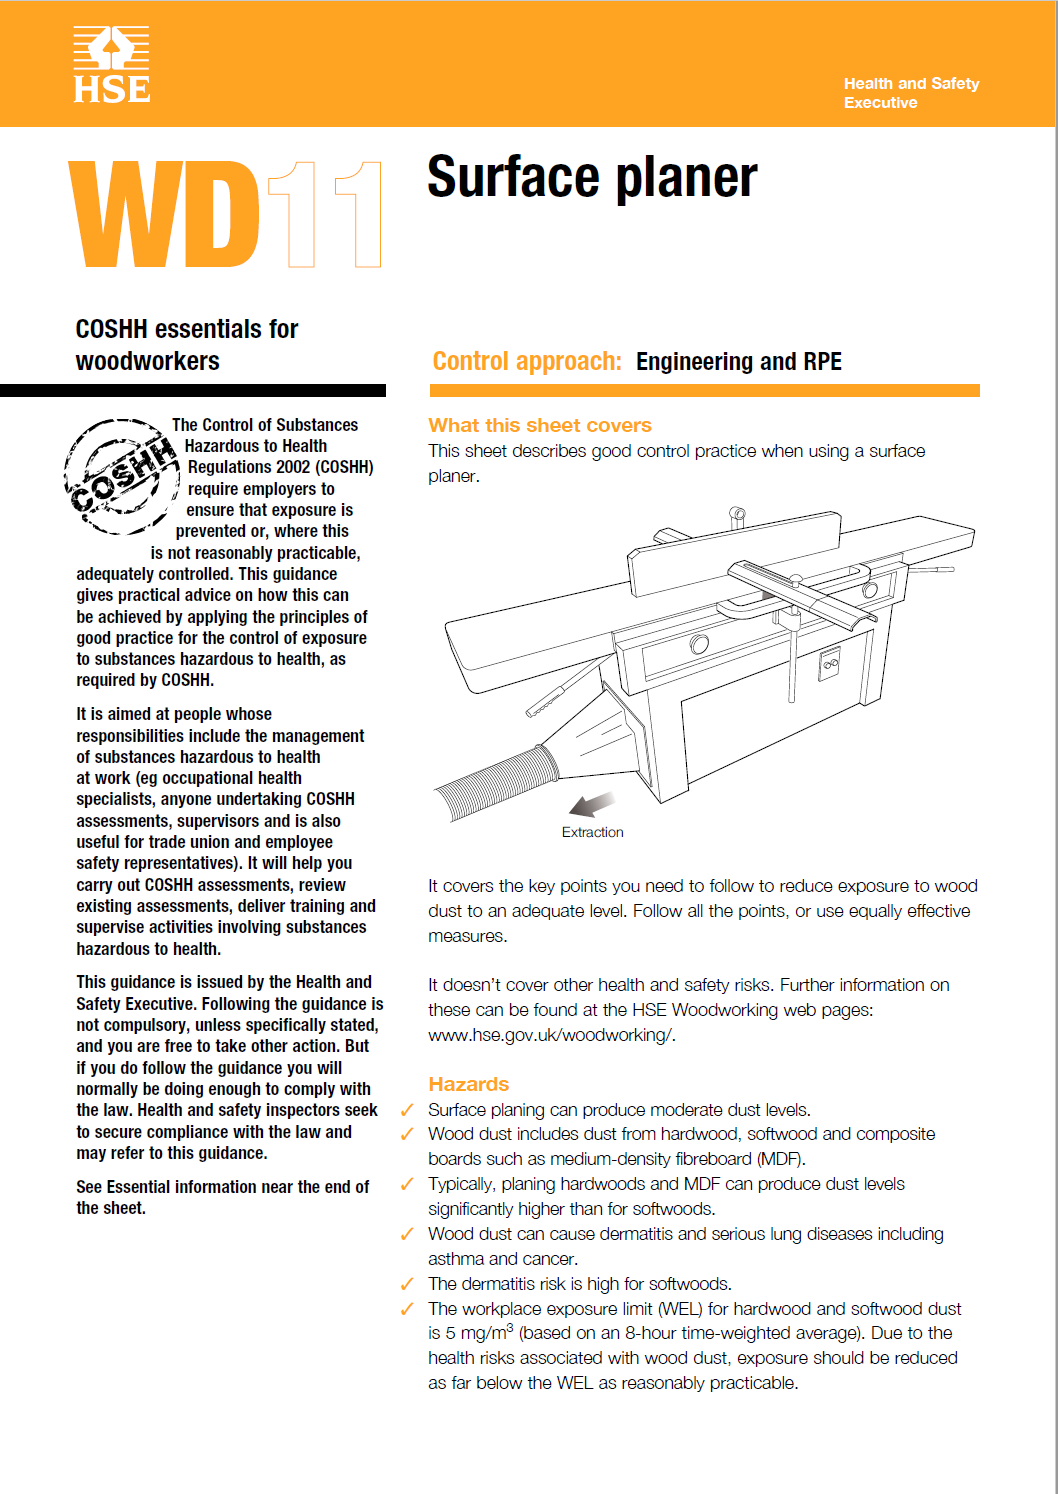 WD11: Surface planer